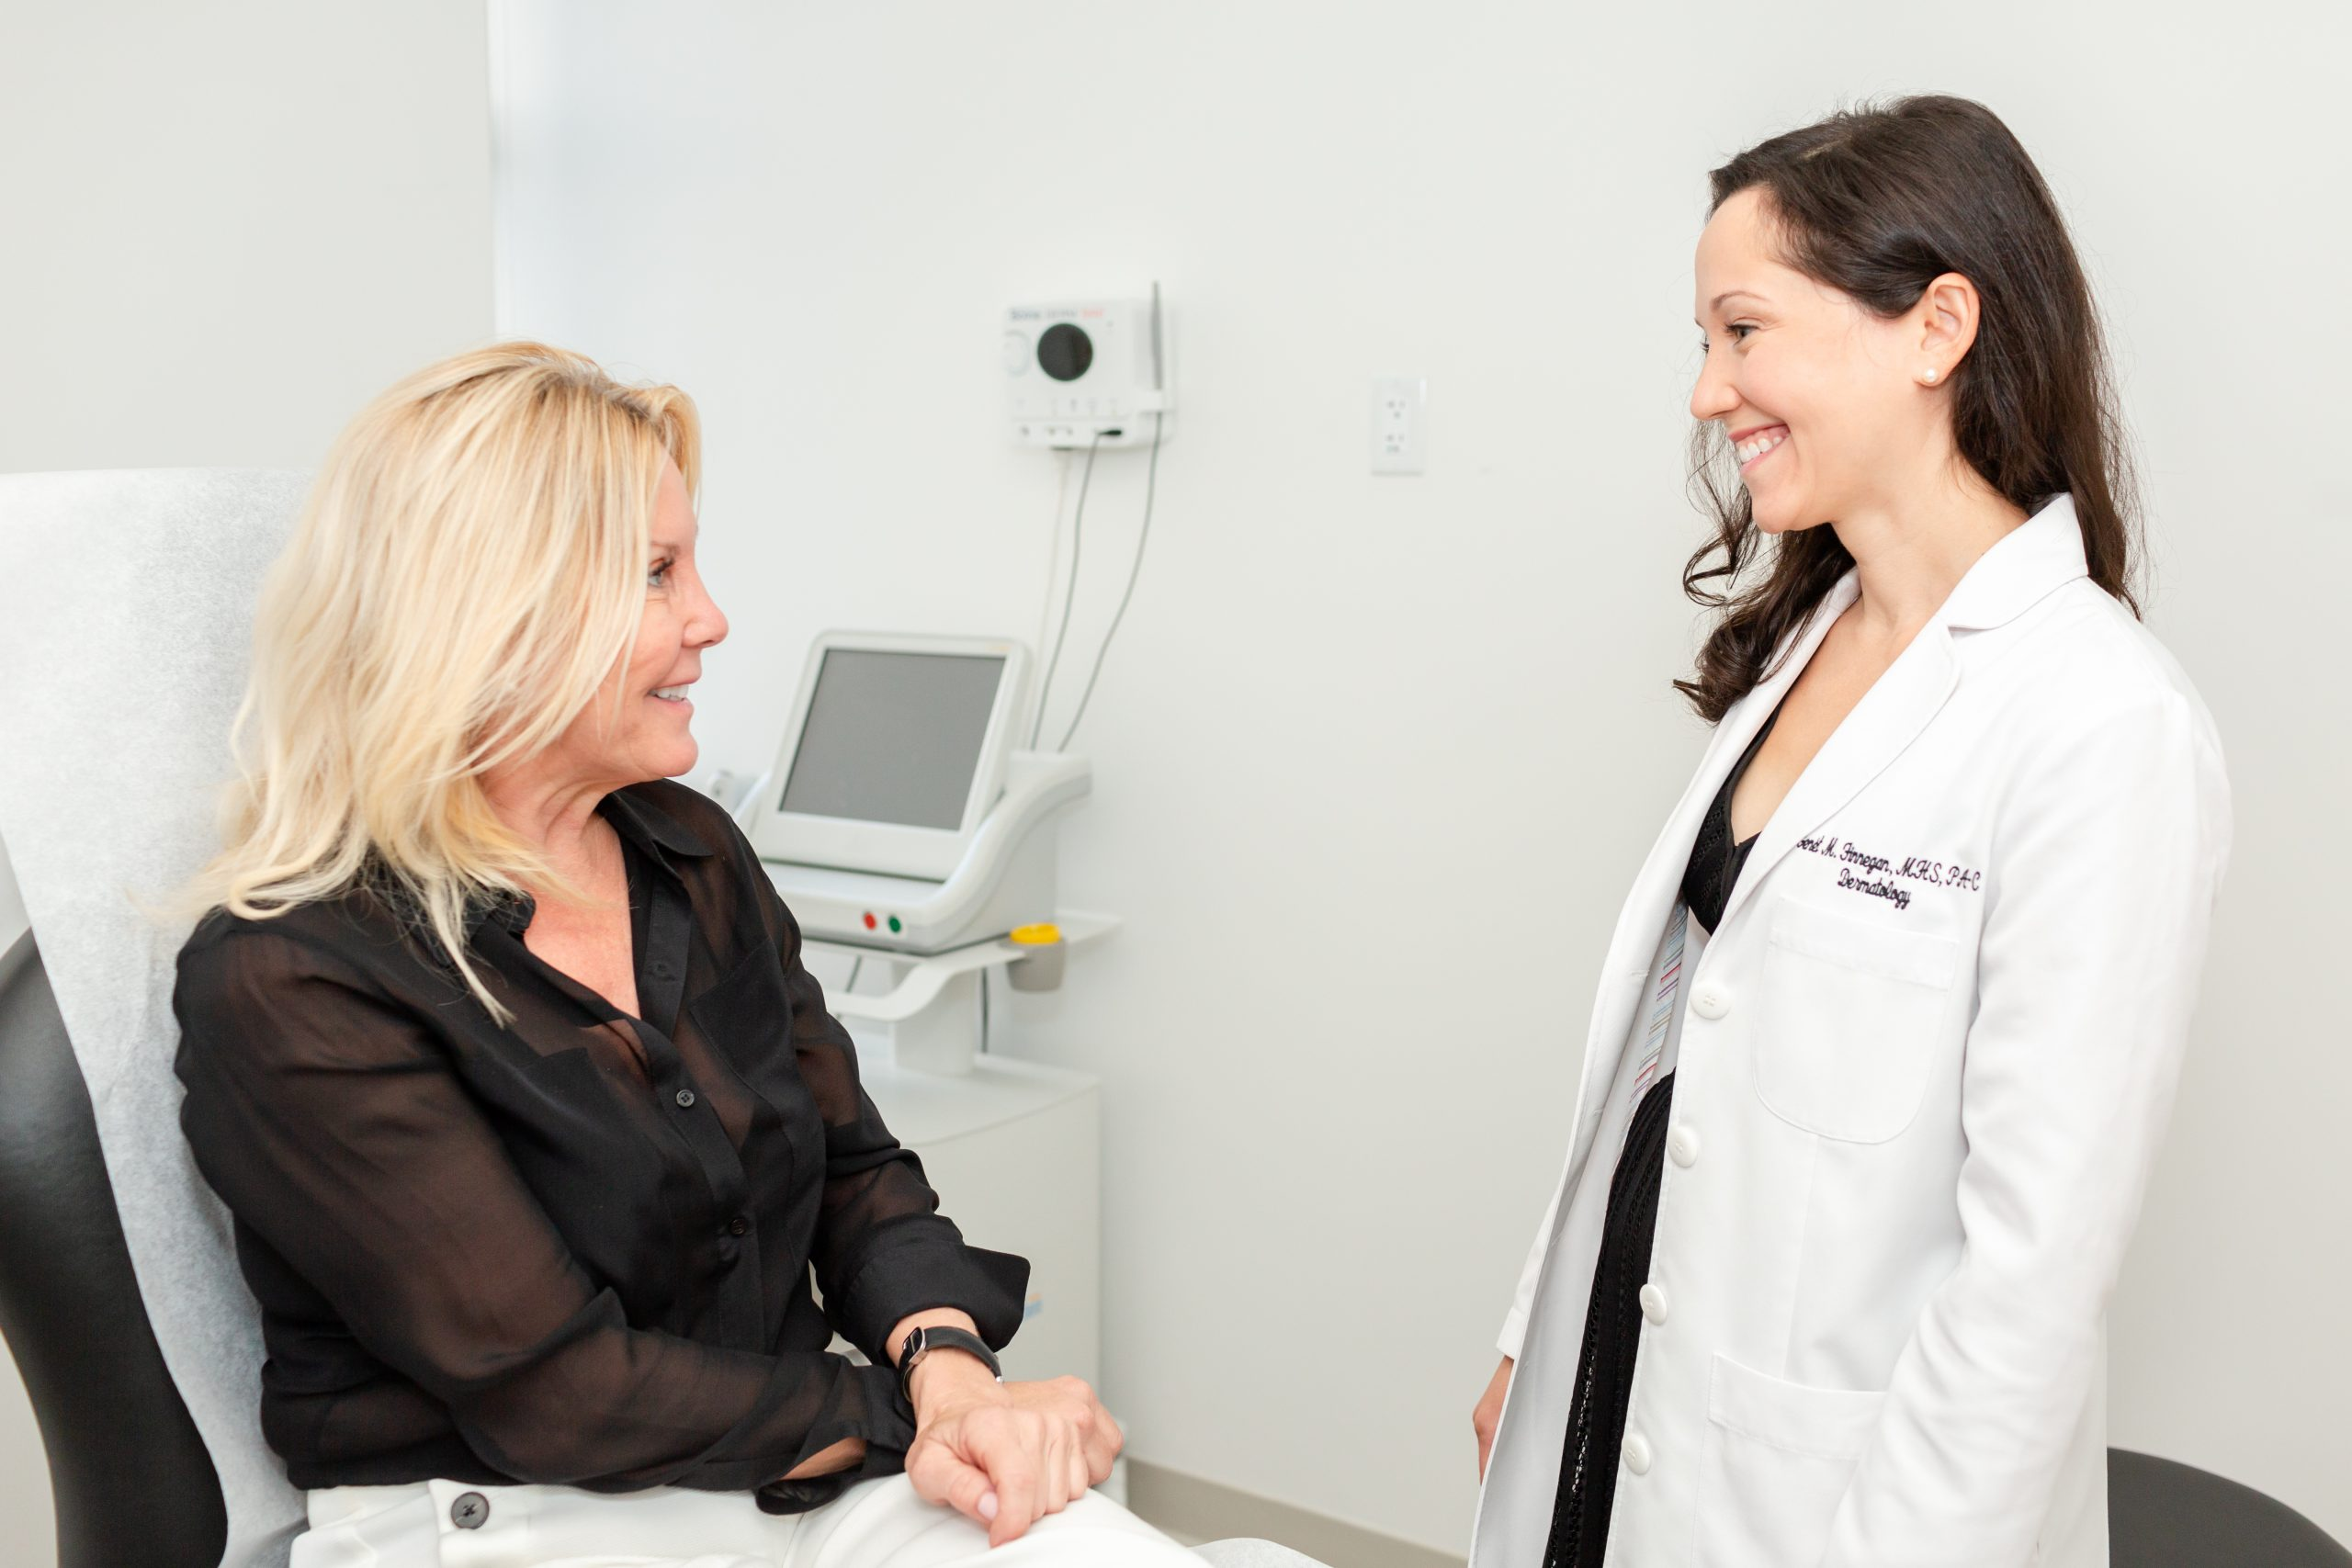 dr. finnegan giving a patient a general consultation